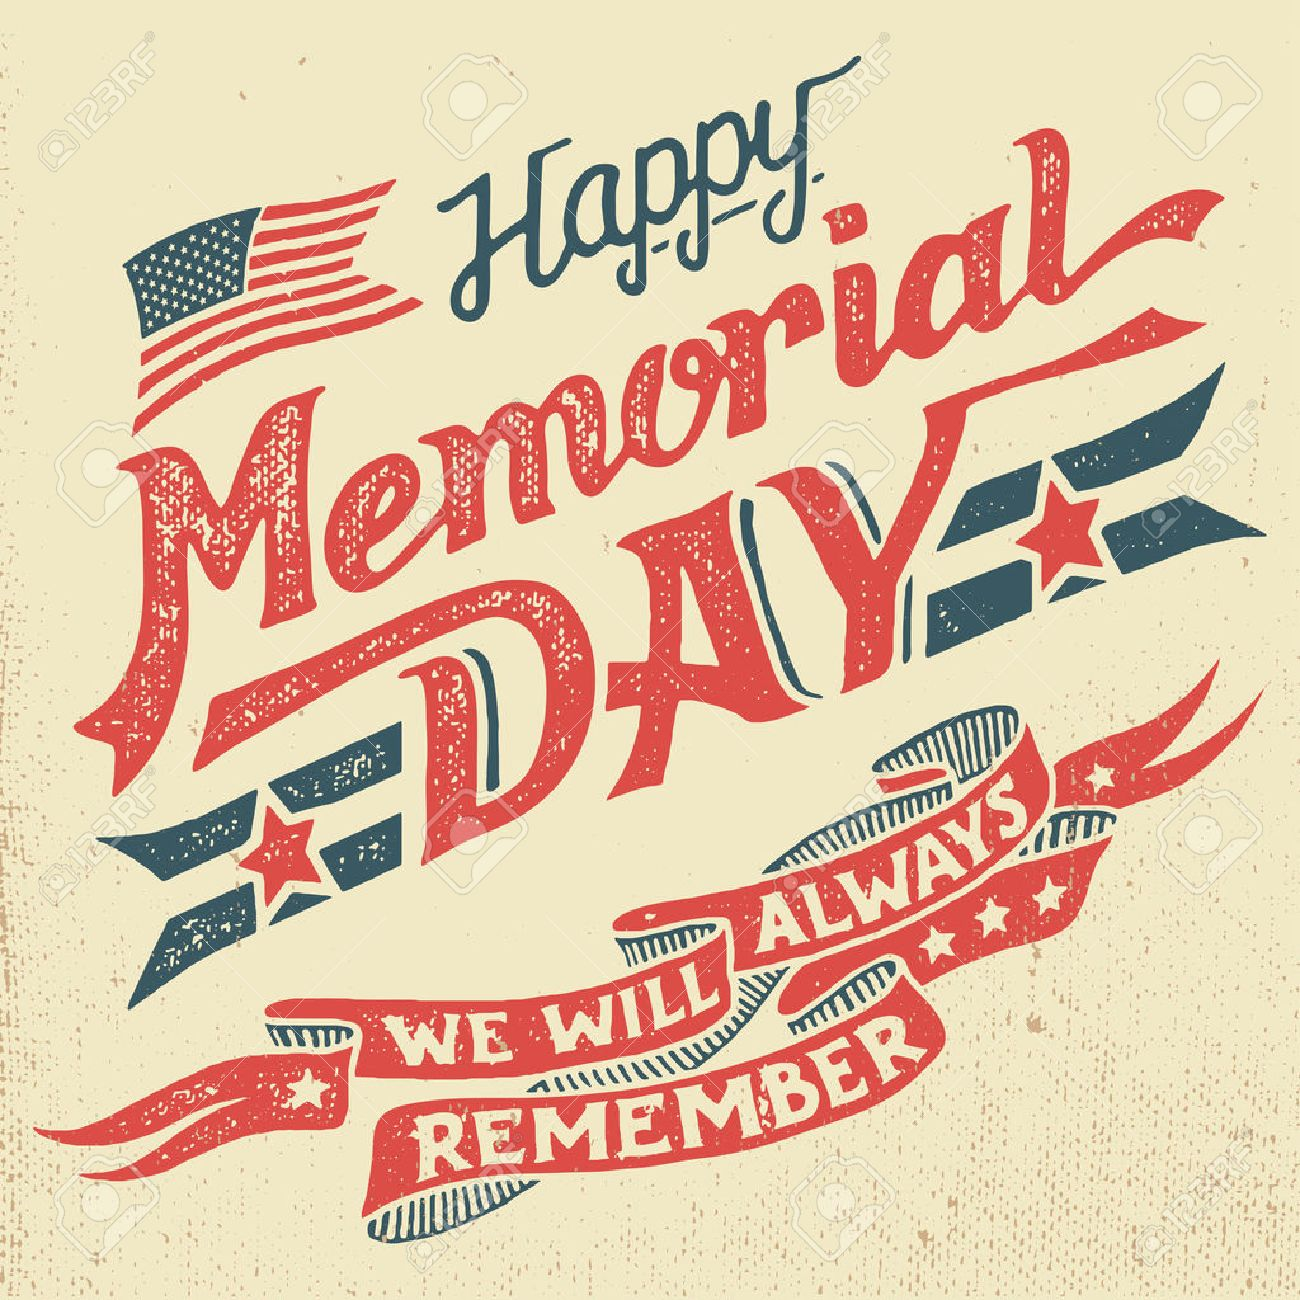 Happy Memorial Day. We will always remember. Hand-lettering greeting card with textured letters and background in retro style. Hand-drawn vintage typography illustration - 56479276